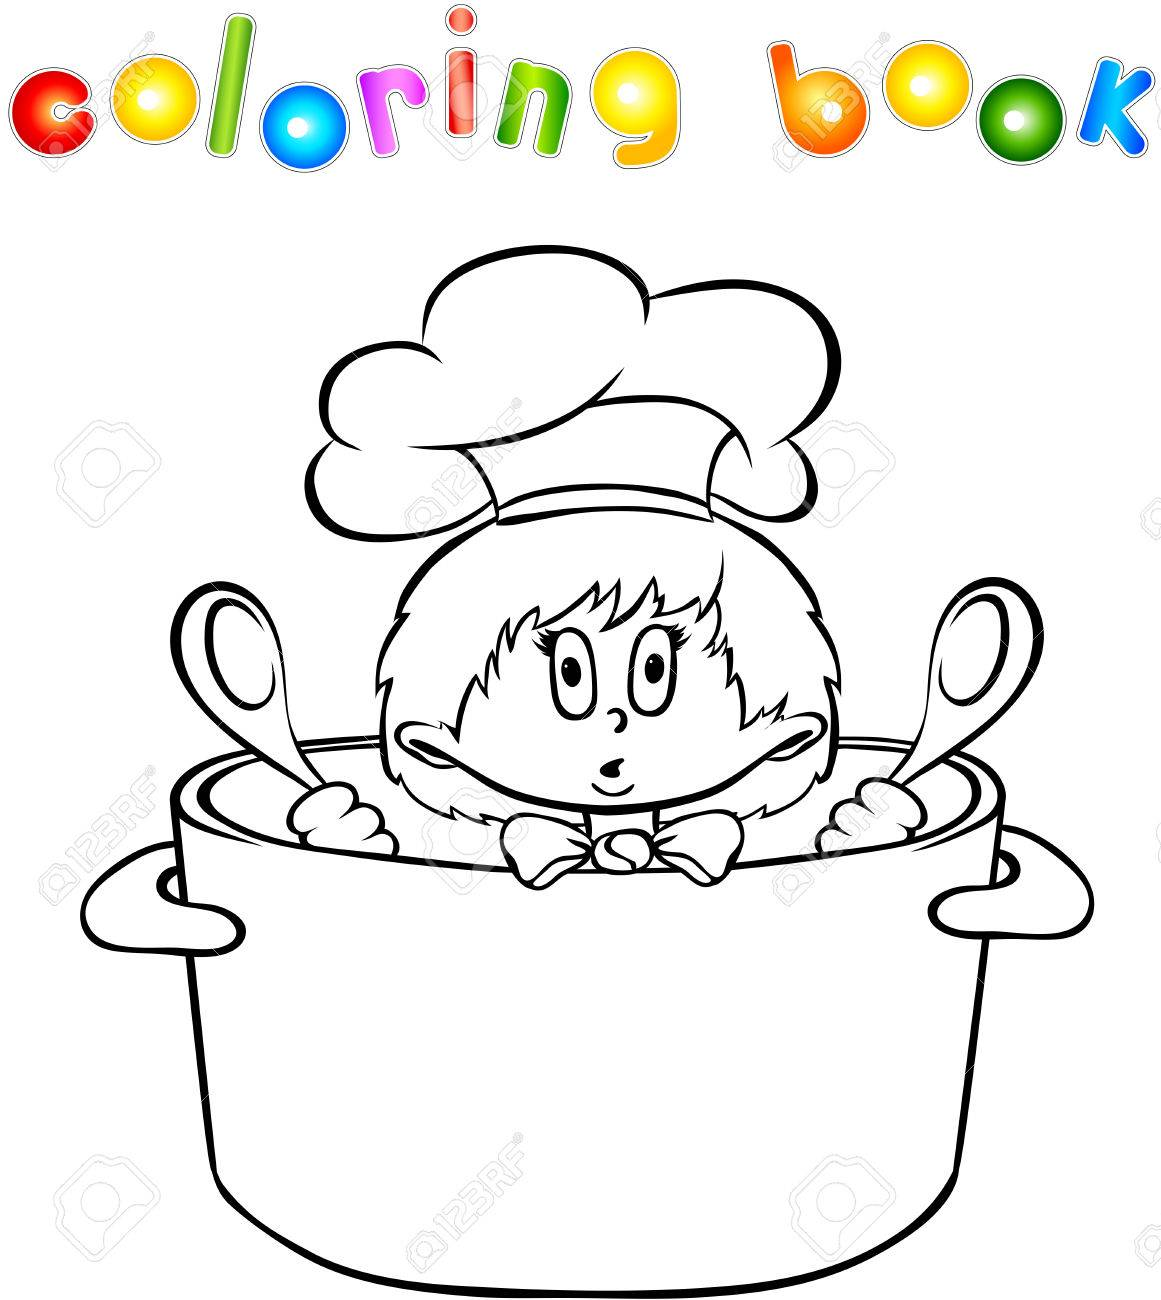 Coloring book kitchen - Funny Surprised Kitchen Boy Coloring Book Vector Illustration Stock Vector 44304152